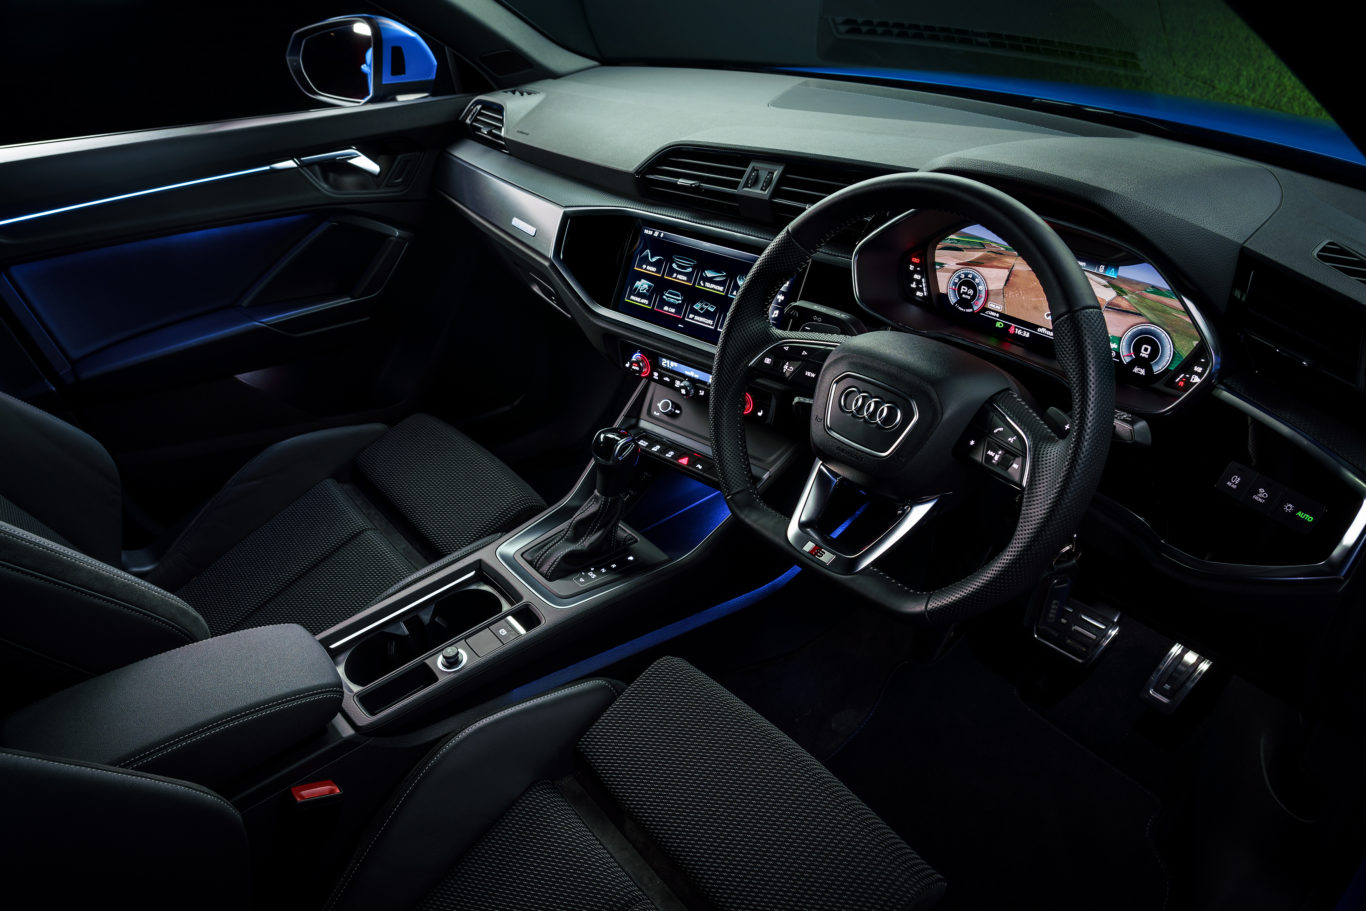 The interior of the Q3 is impressively well-made